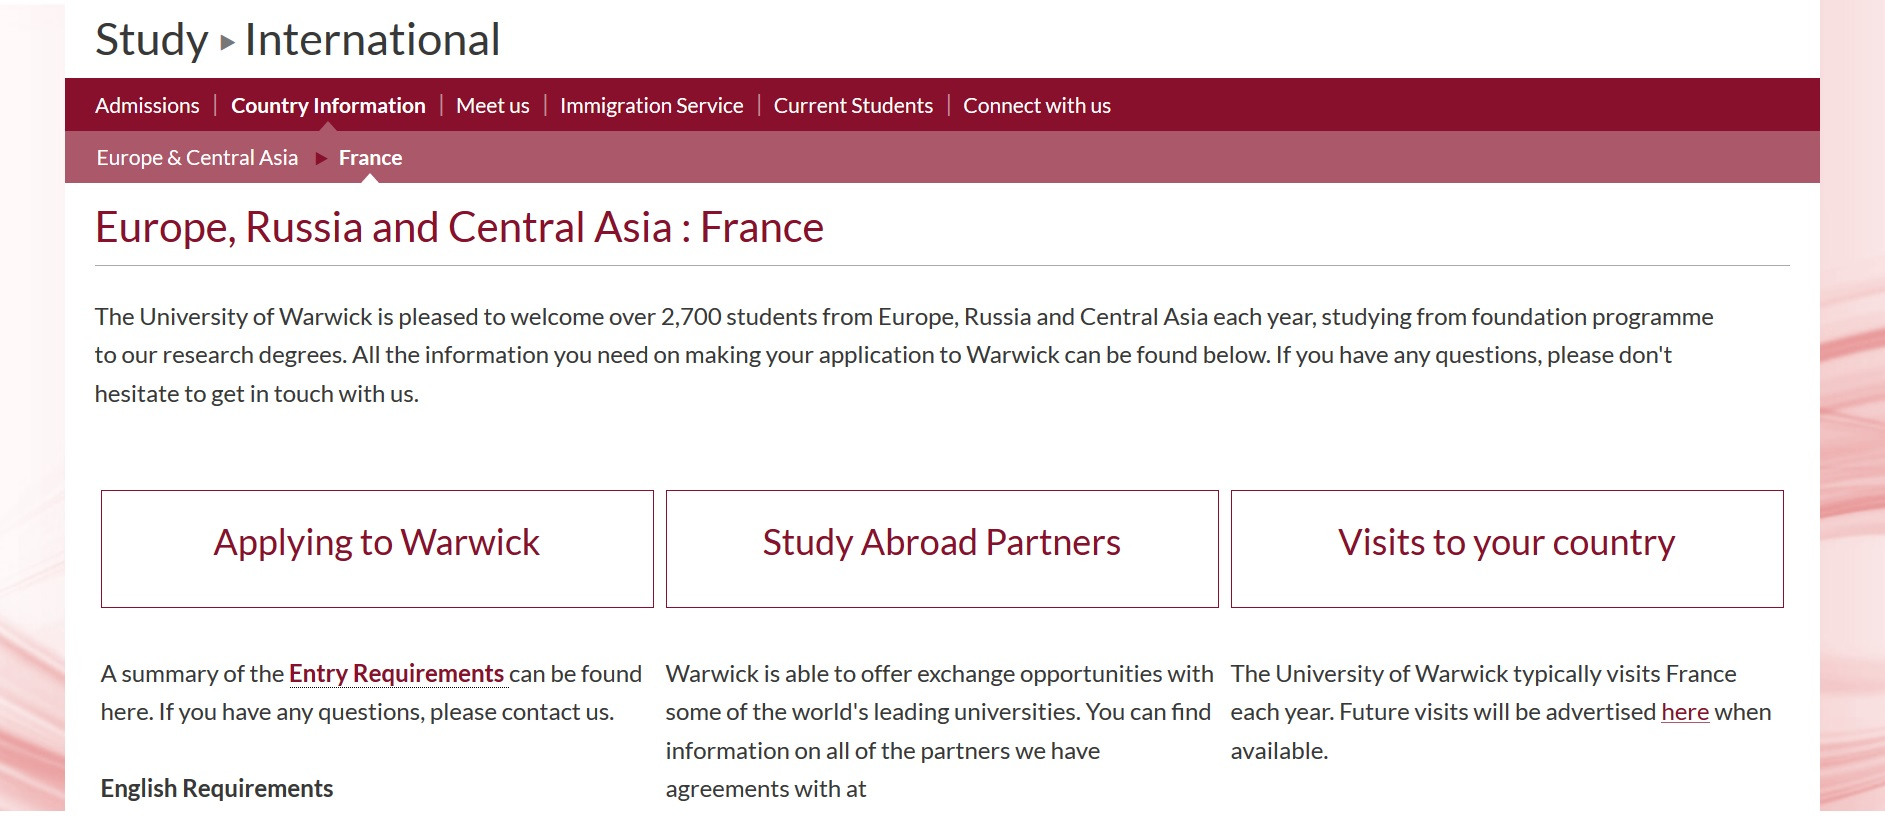 University of Warwick website